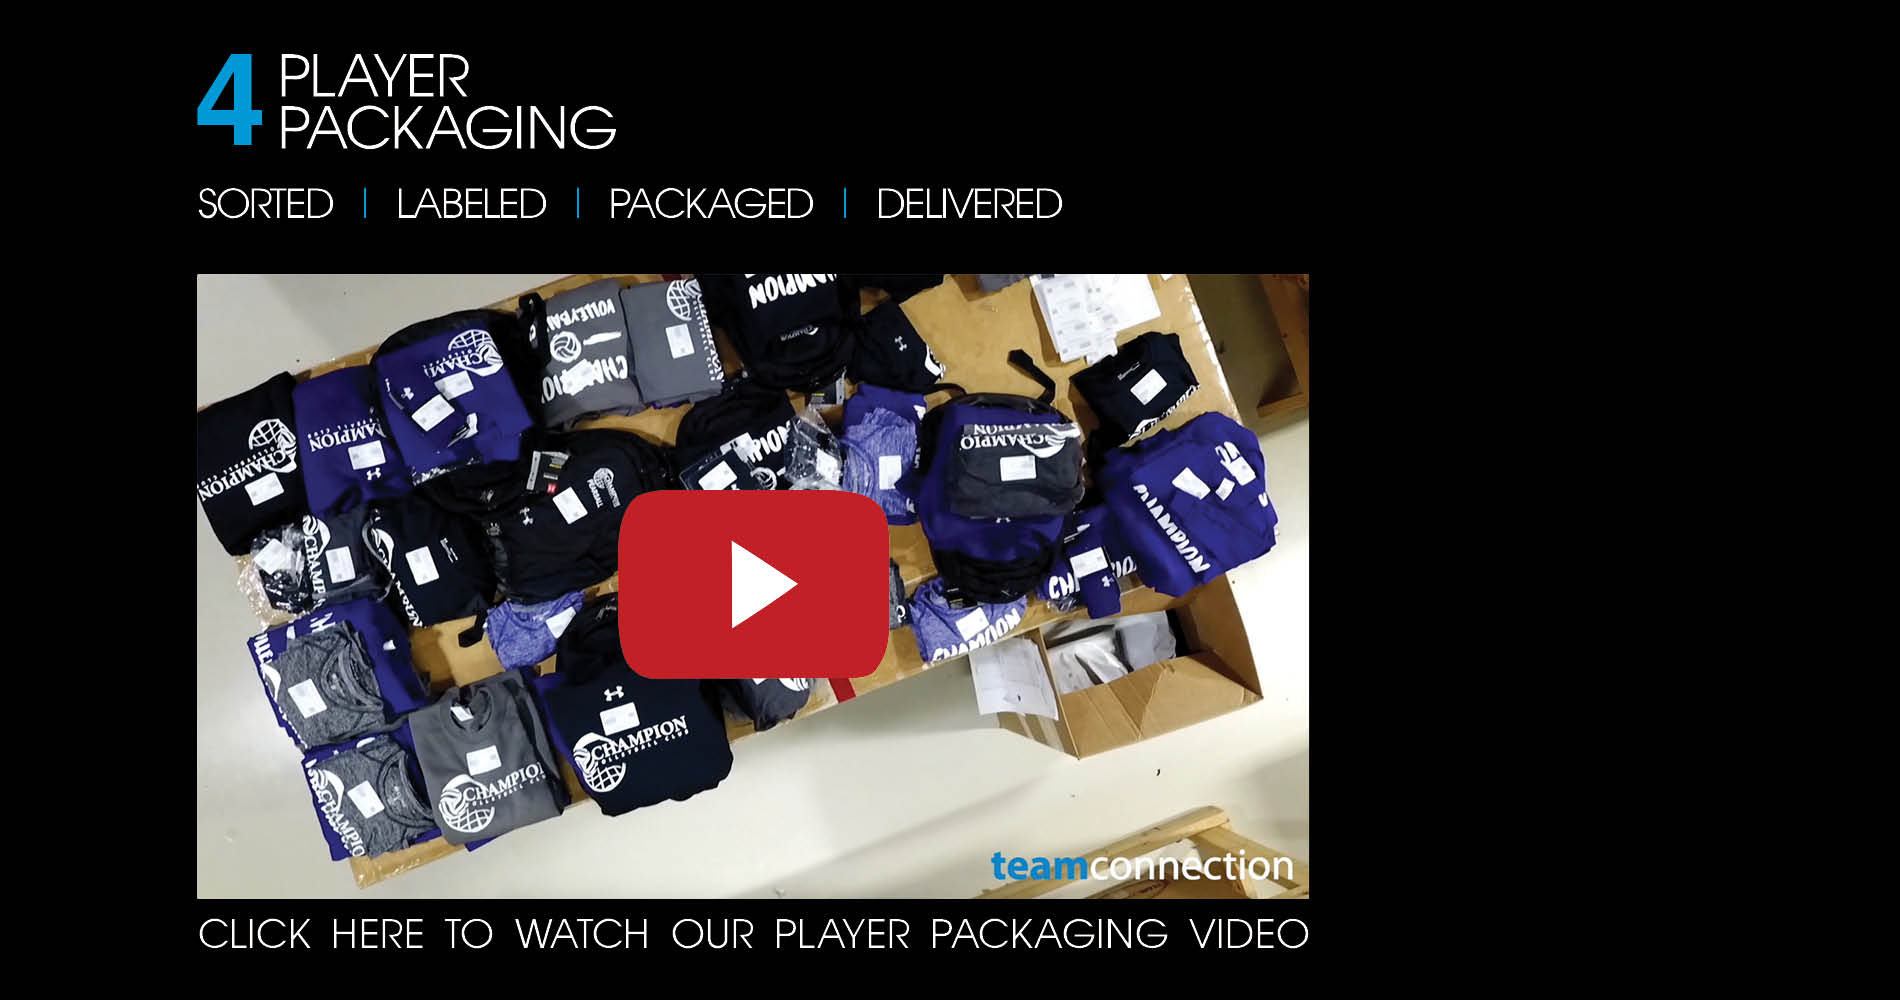 Player packaging